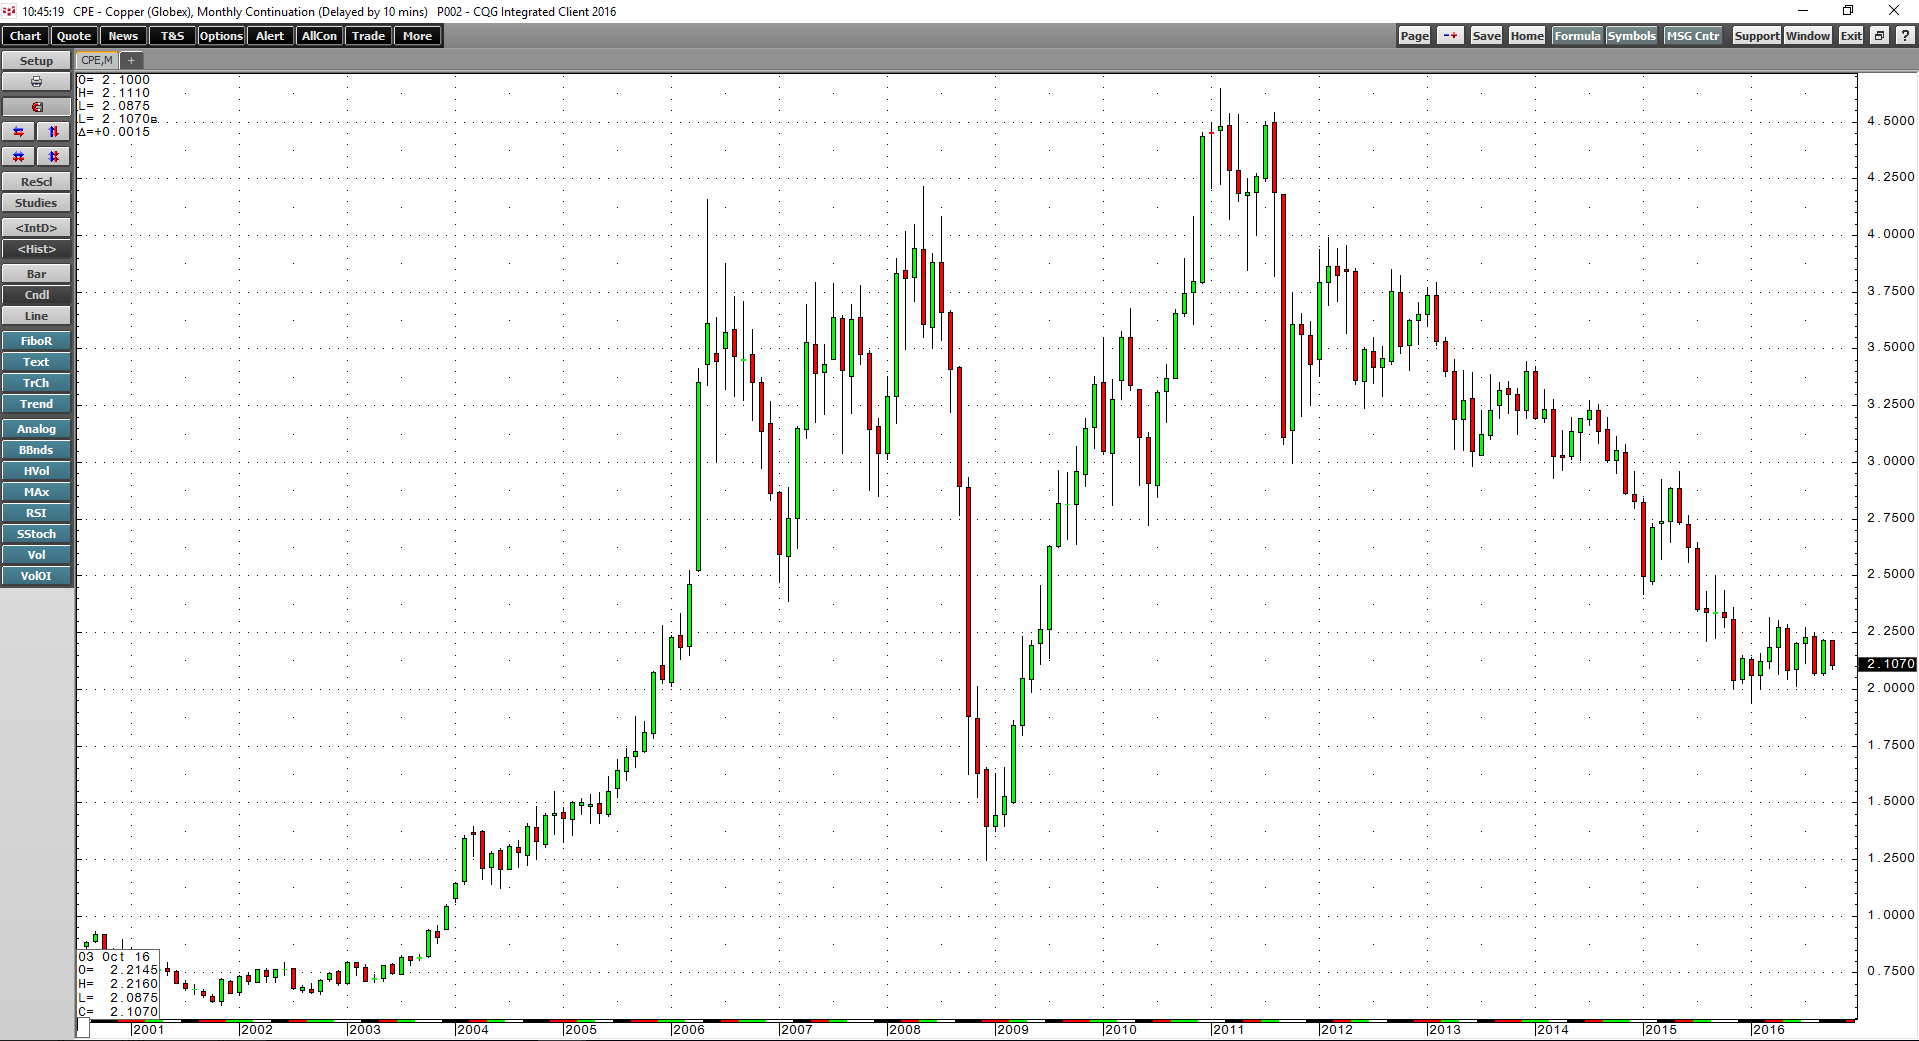 As The Monthly Chart Of Comex Copper Futures Ilrates Red Metal Traded To Almost 4 22 Per Pound In 2008 Before Global Financial Crisis Made